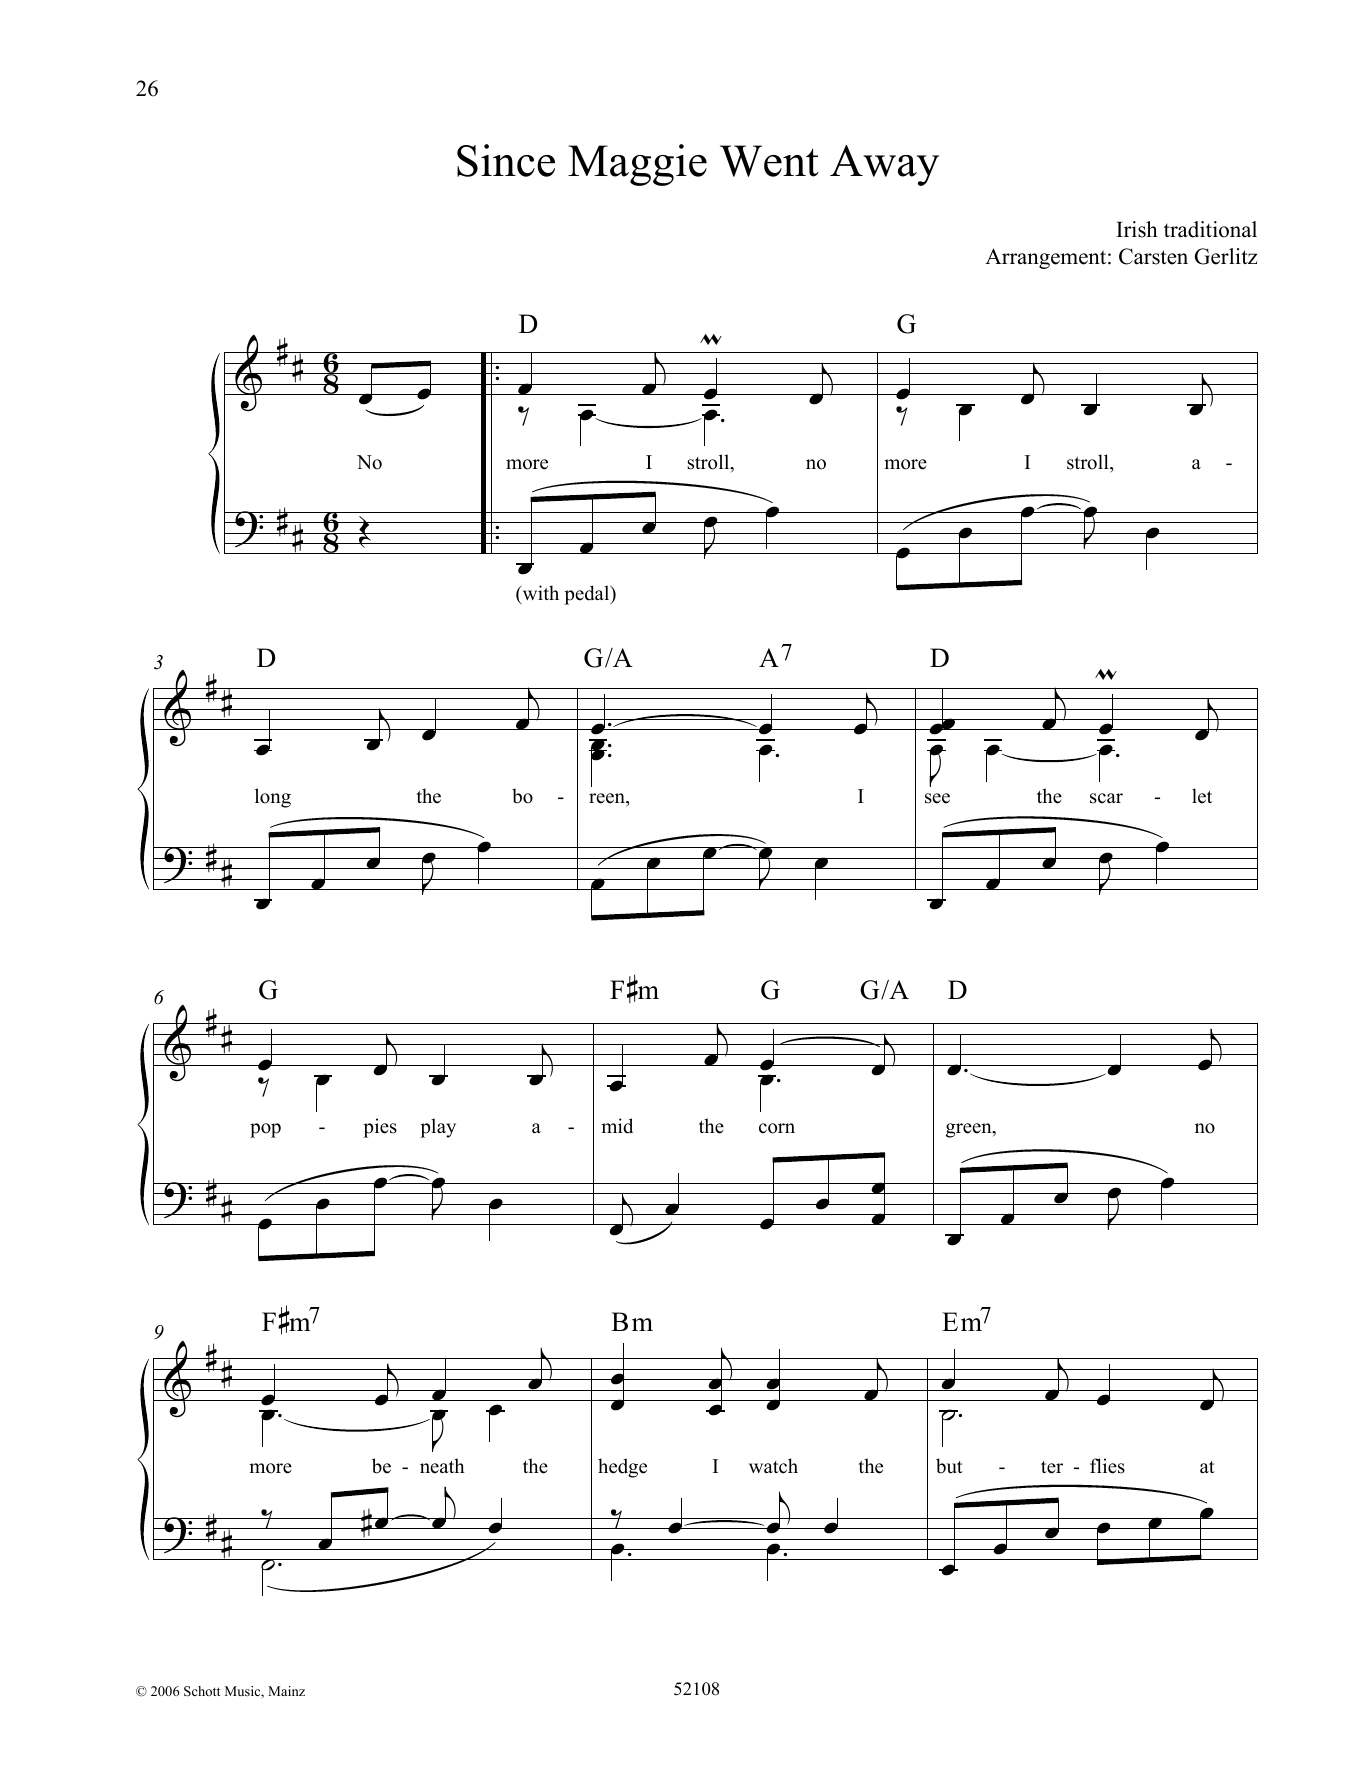 Since Maggie Went Away Sheet Music